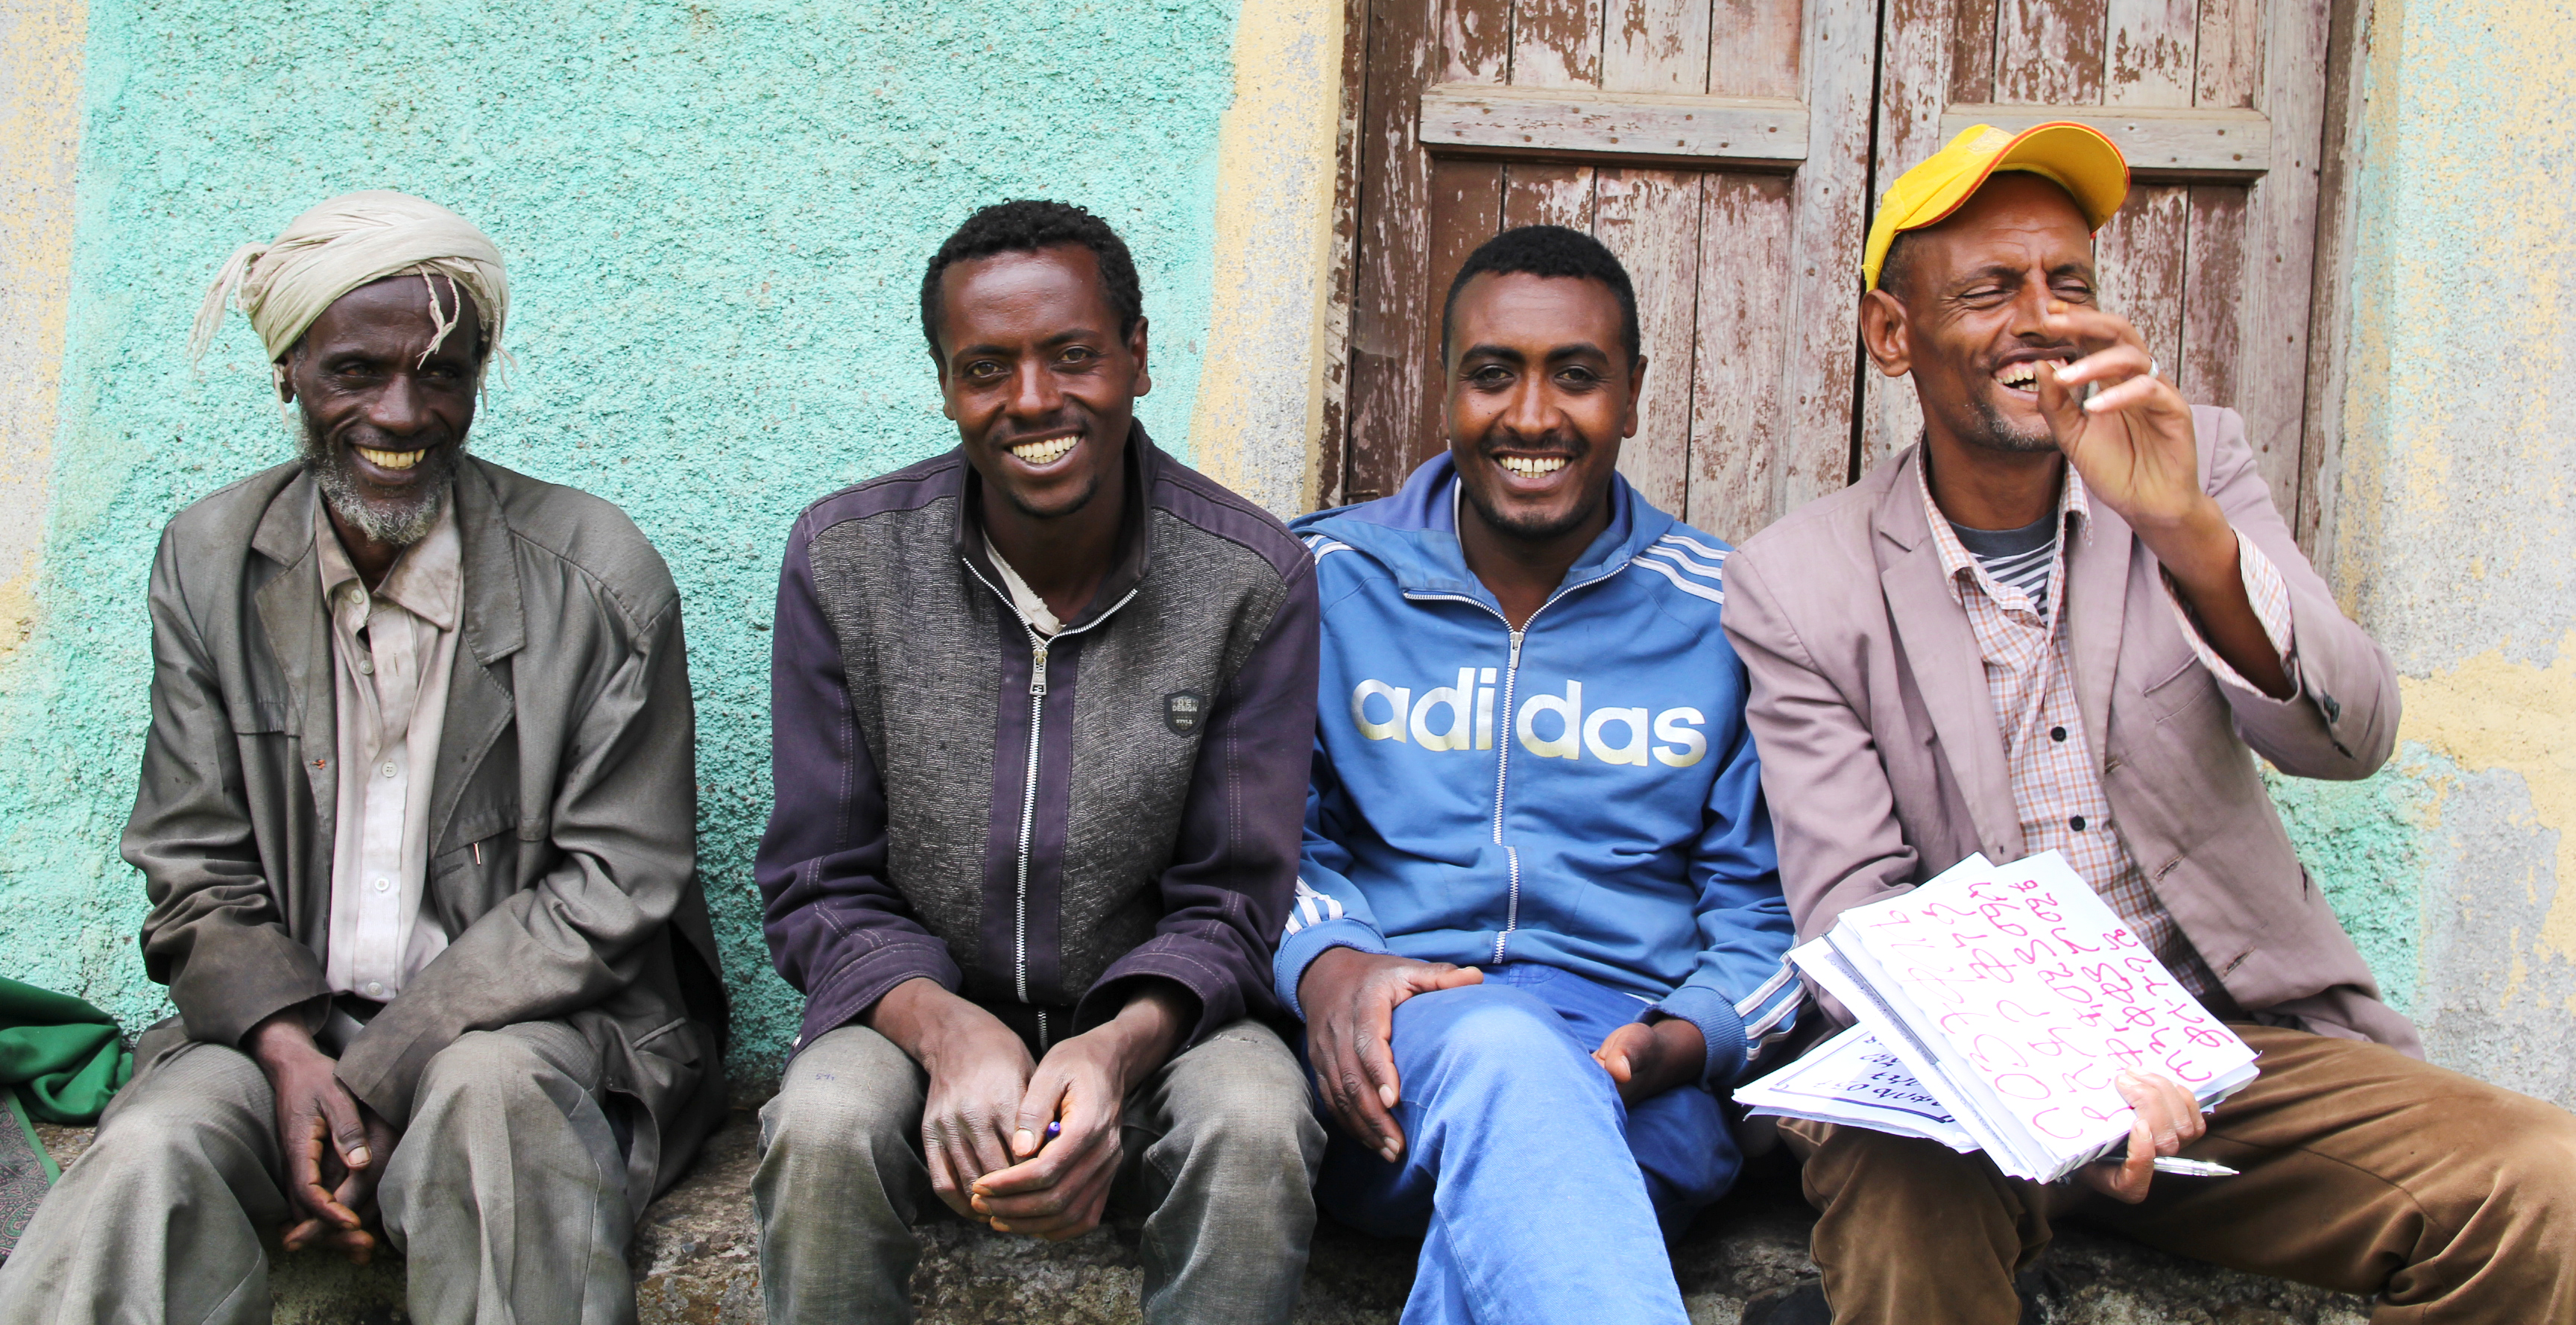 Ethiopian men on a bench